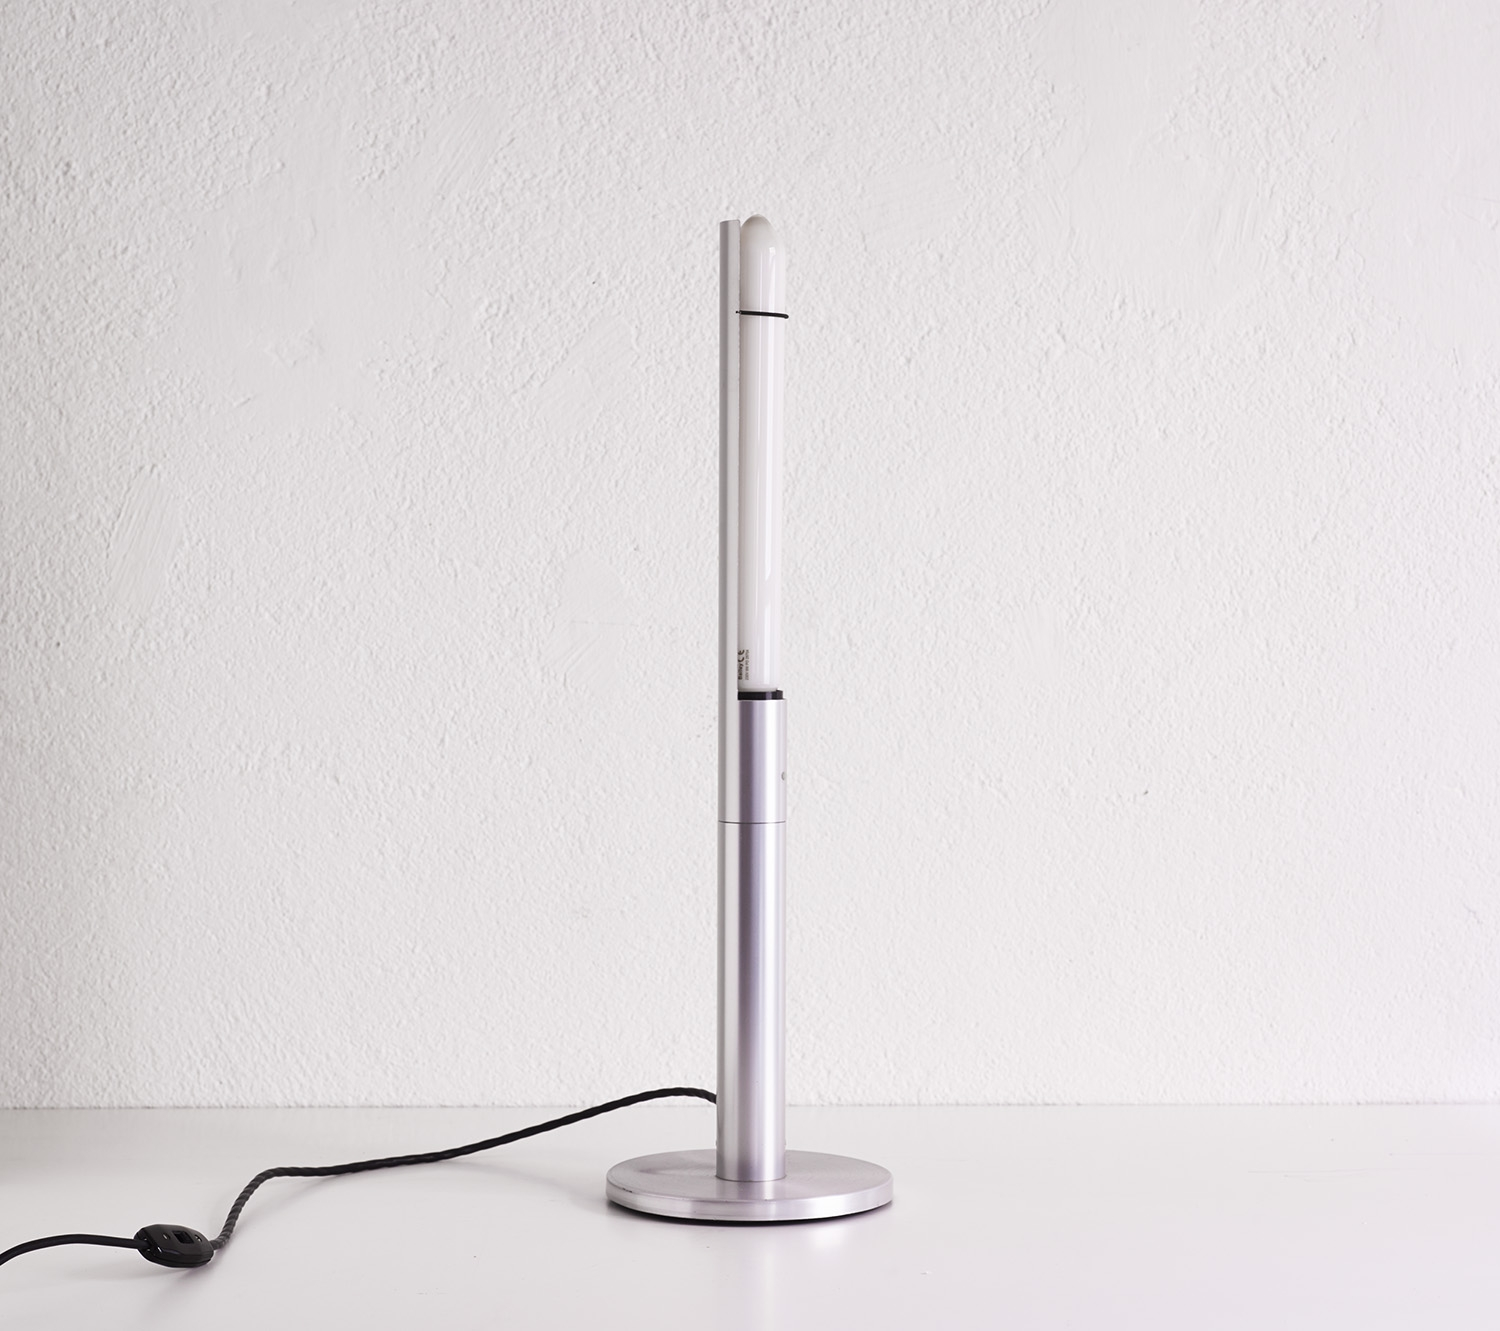 lampe-table-s1-baltensweiler-image-04